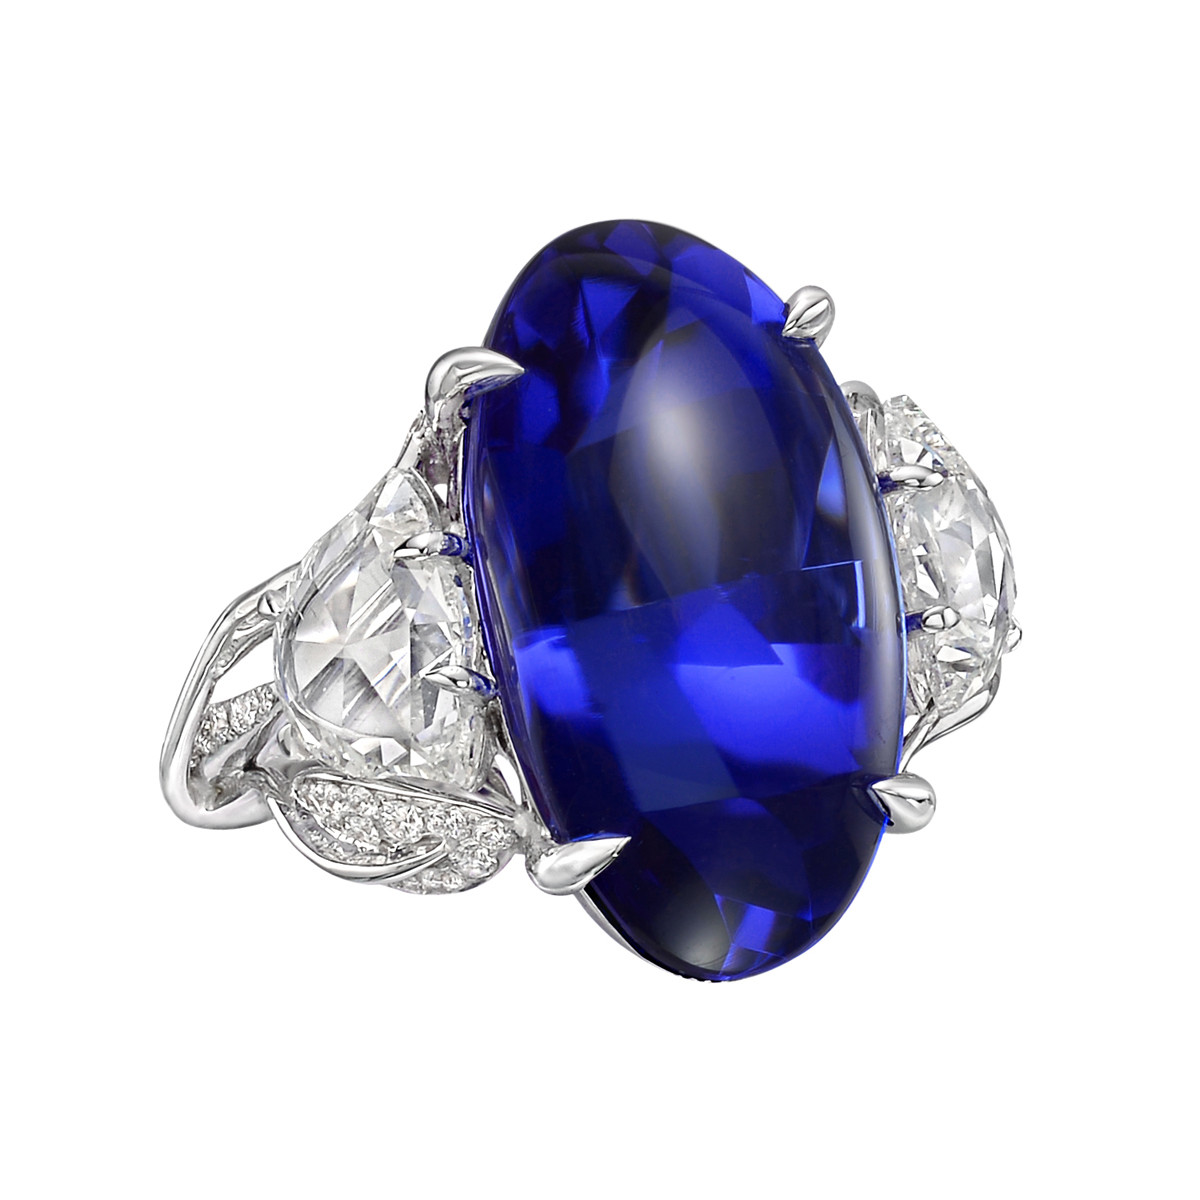 16.12 Carat Tanzanite & Diamond Cocktail Ring